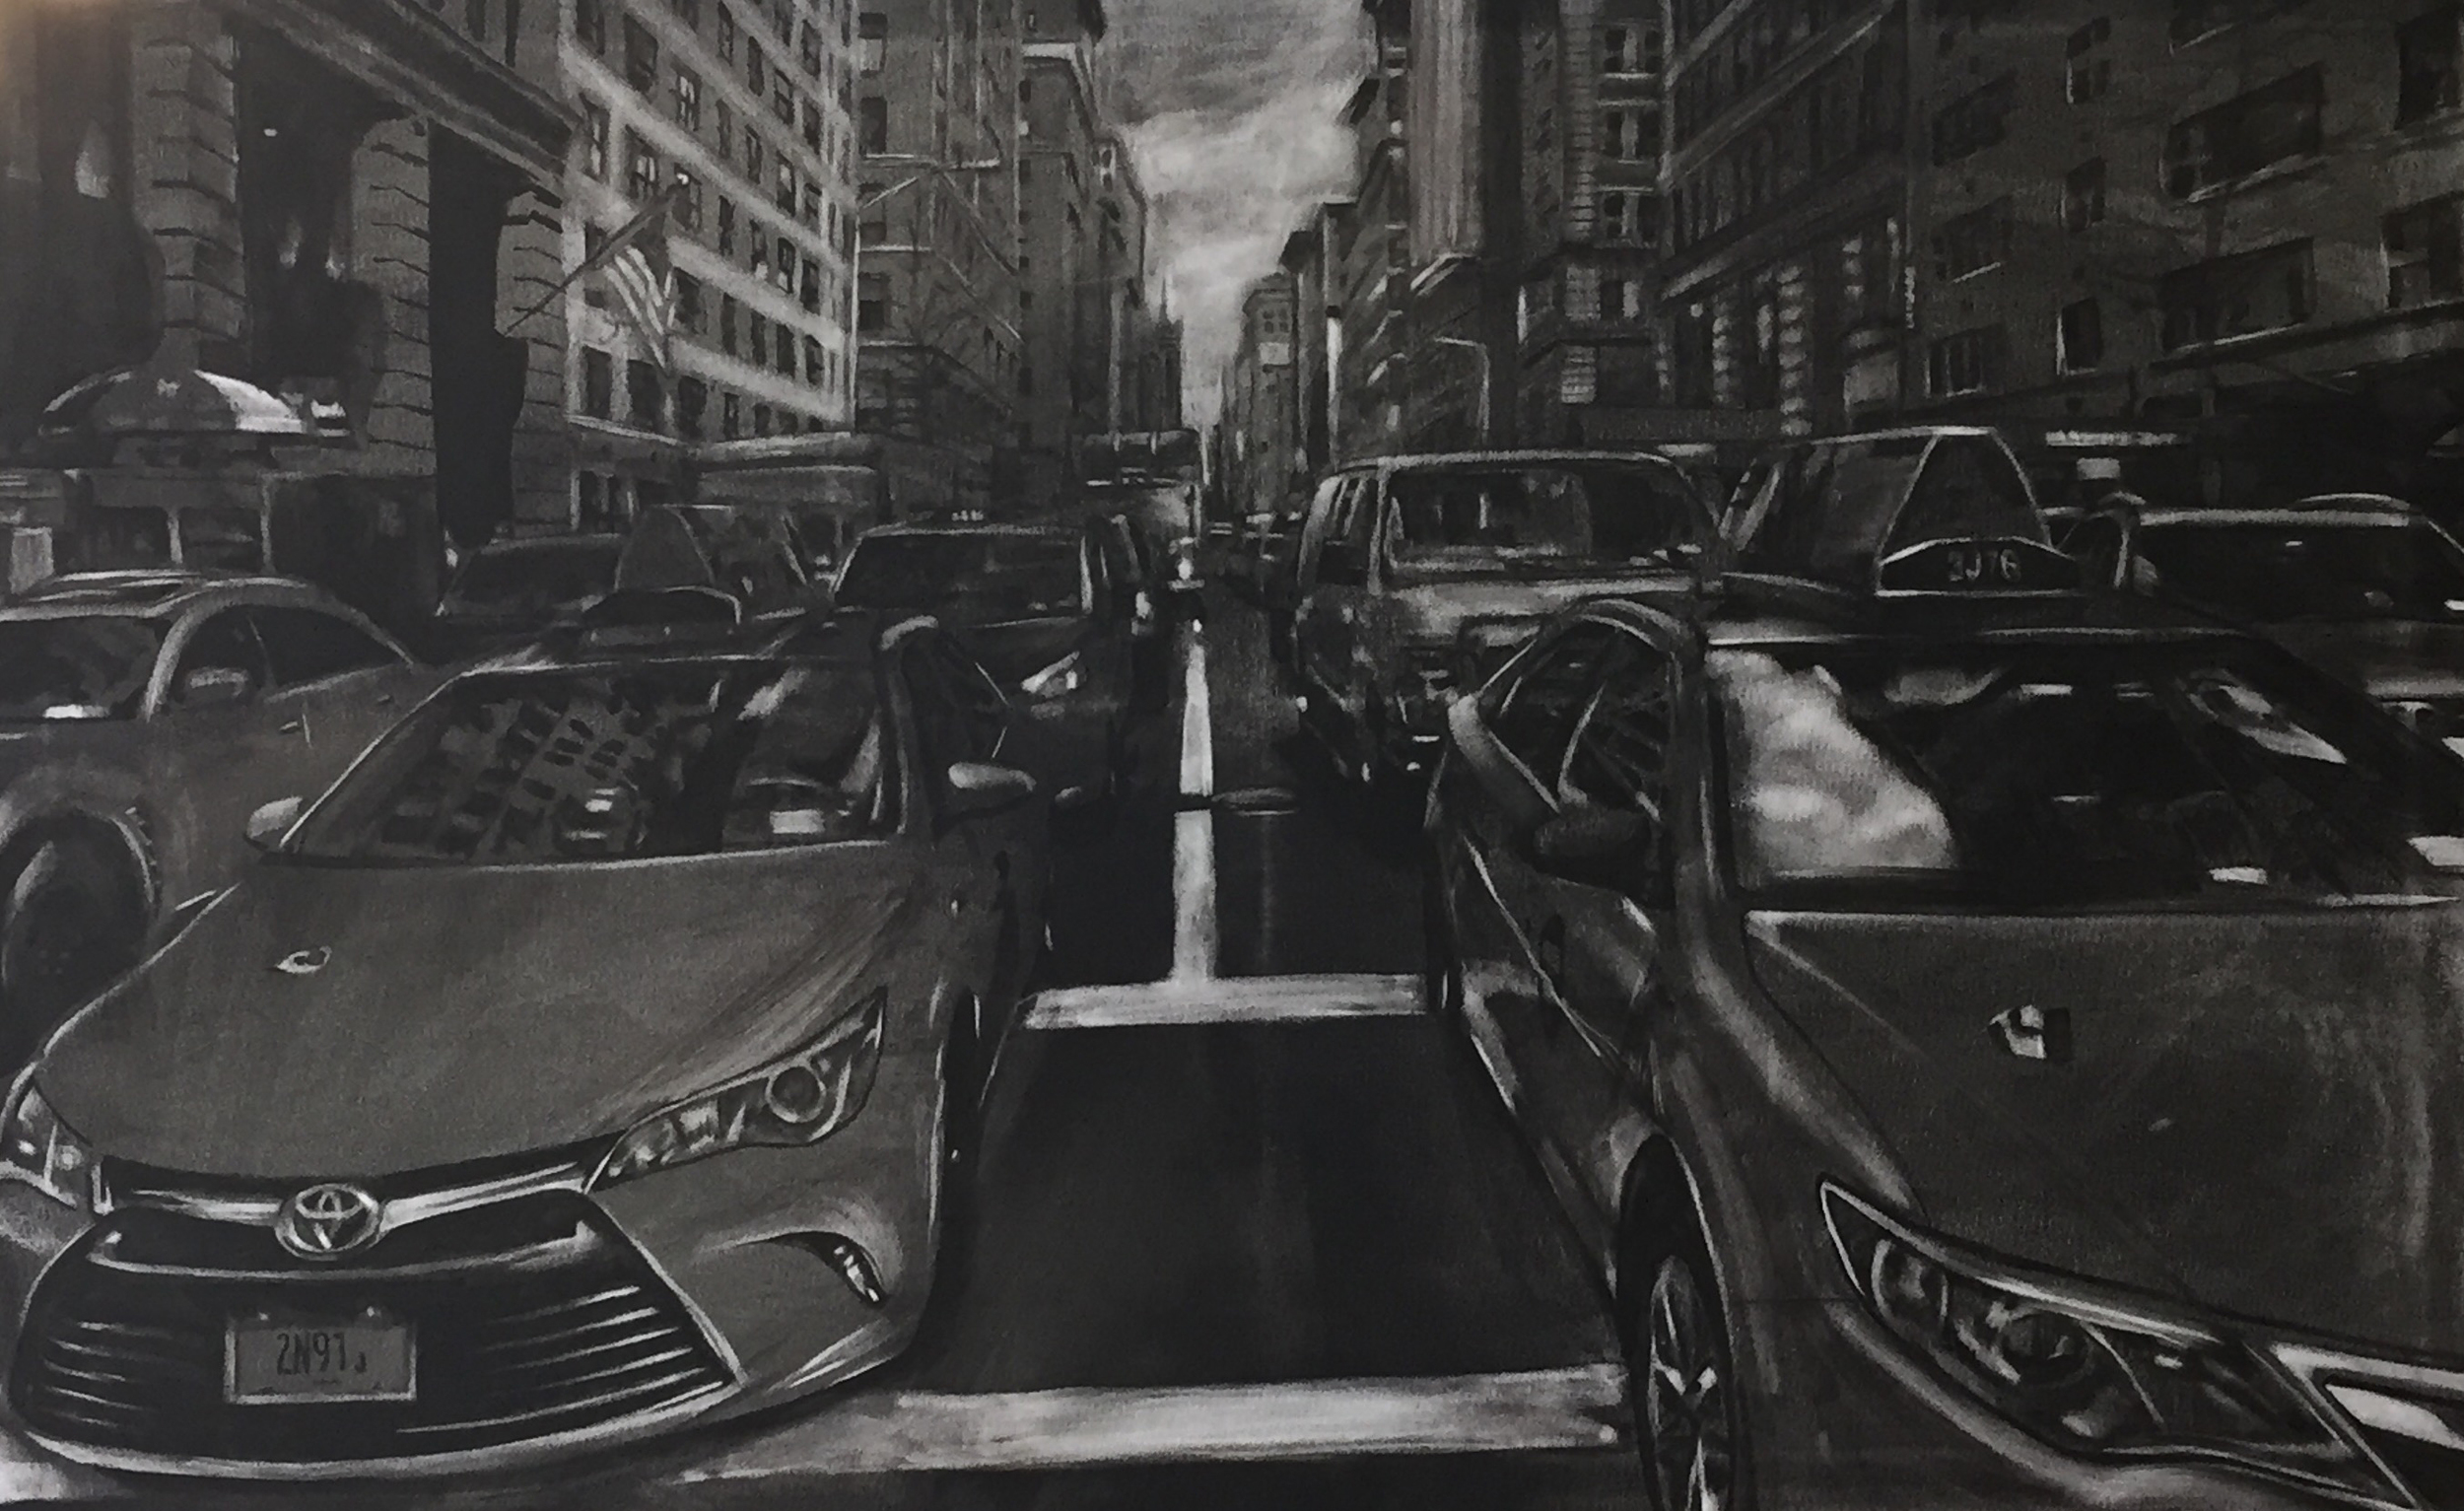 5th Avenue Taxis Underpainting